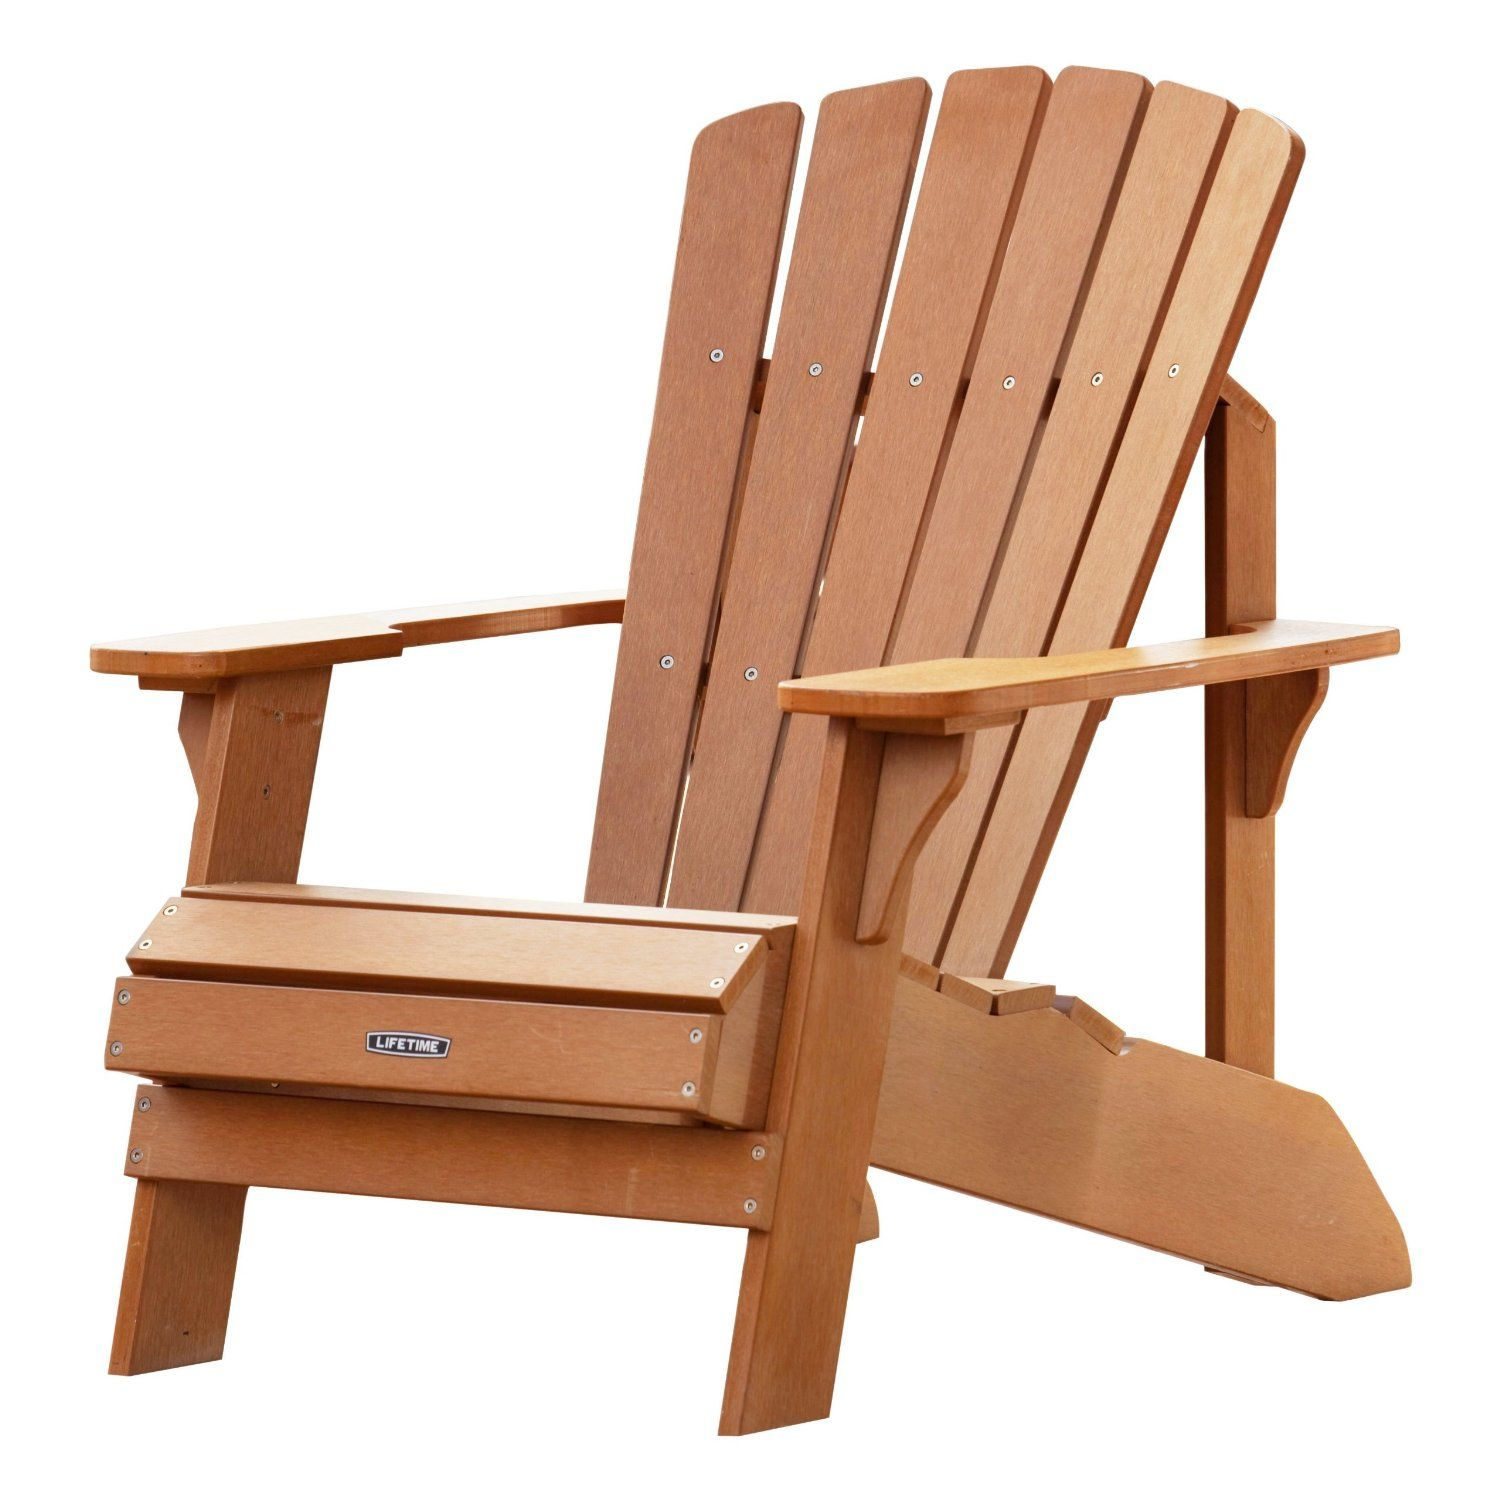 Outdoor Patio Chair Models With Resin Adirondack Chairs